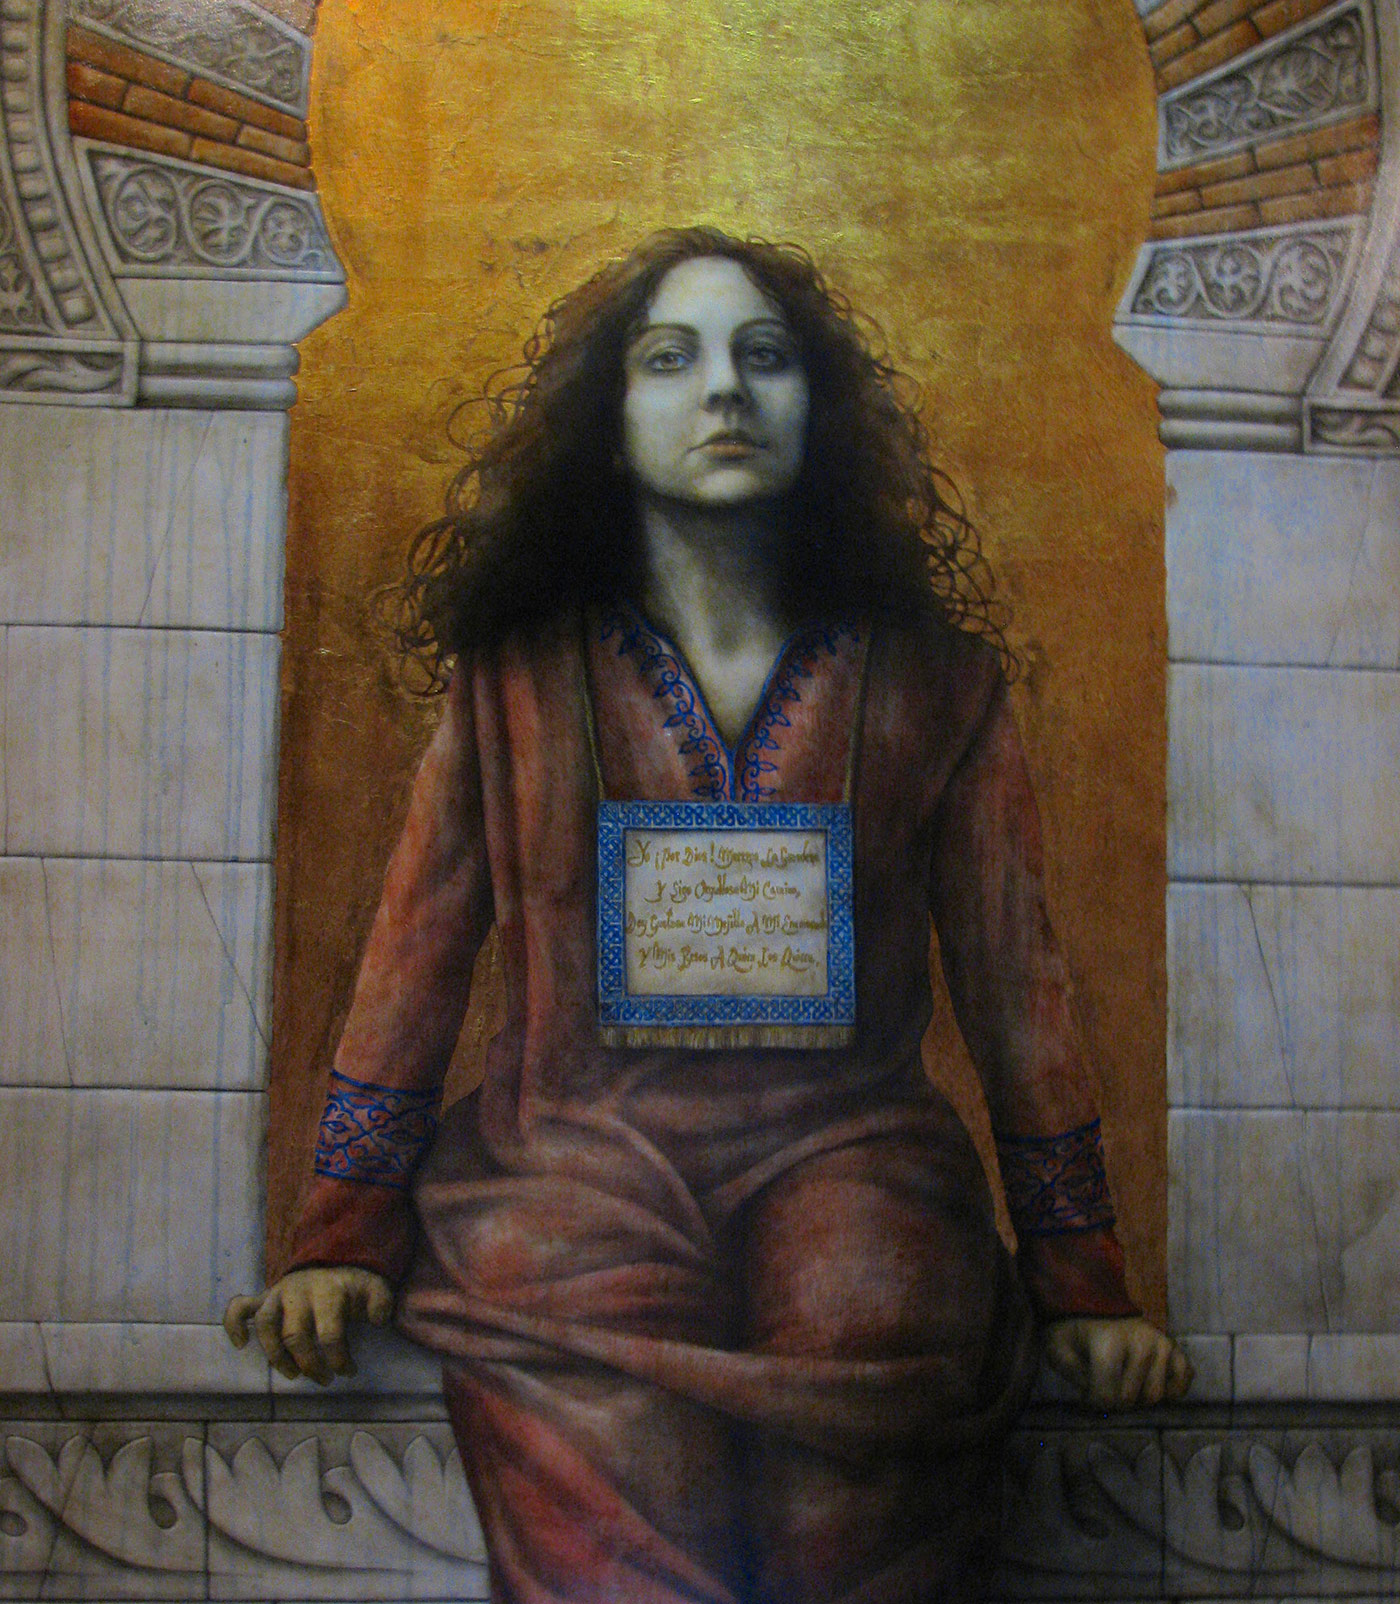 Portrait of Wallada by the contemporary artist José Luis Mun̄oz at the  Sepharad House Museum in Córdoba's Jewish Quarter.